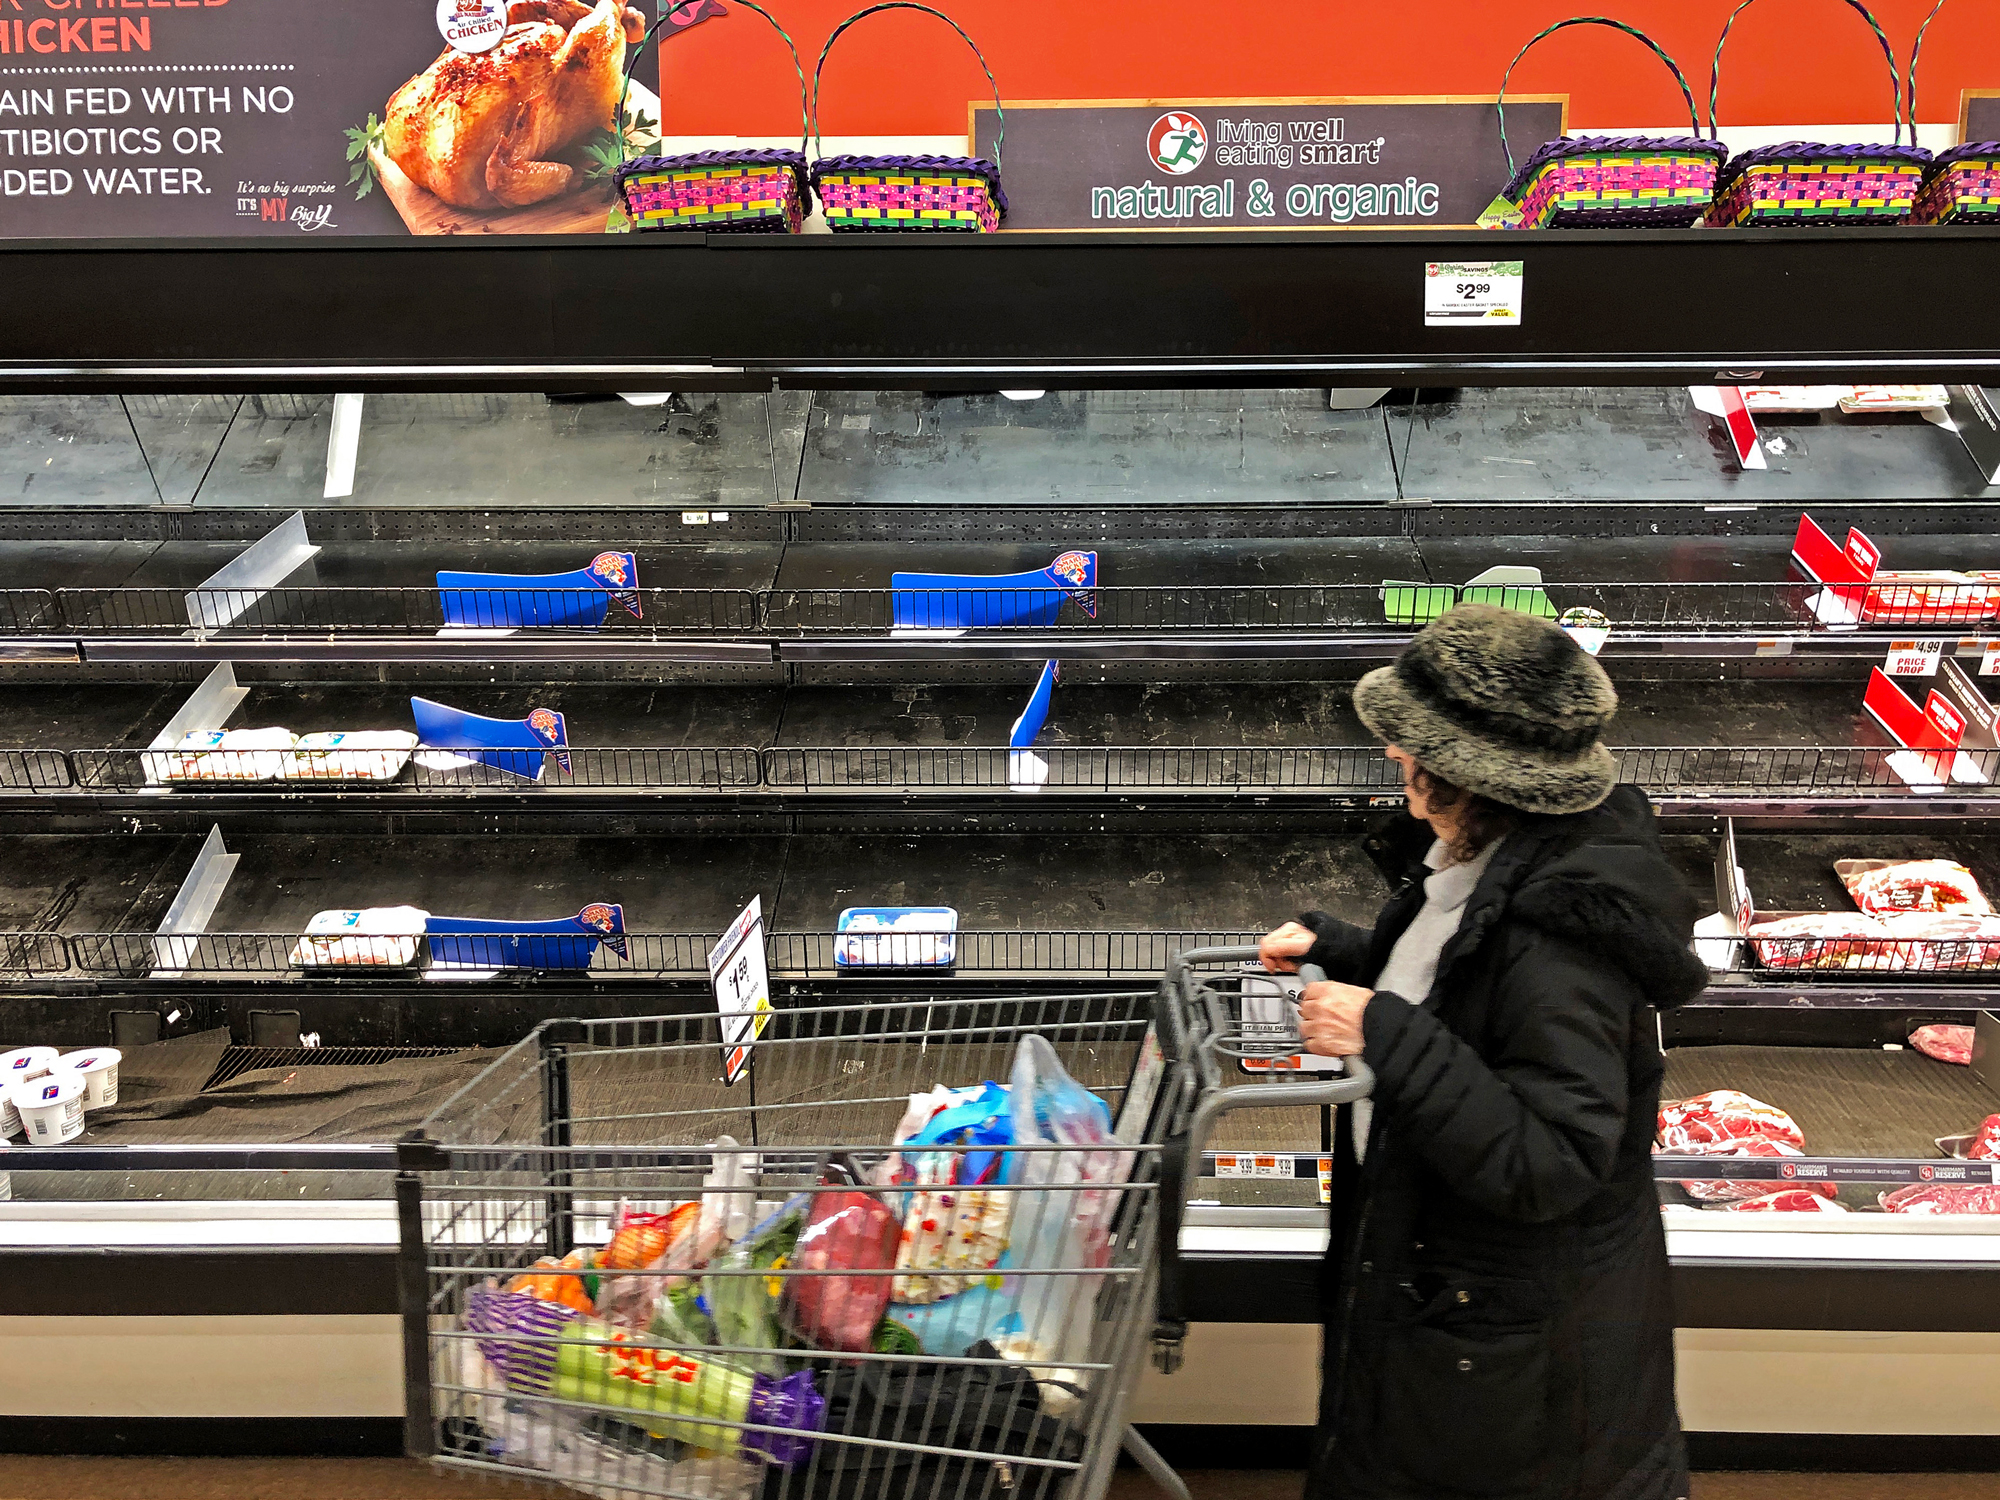 Meat shelves lay empty at a supermarket in Saugus, Massachusetts on March 13, 2020.